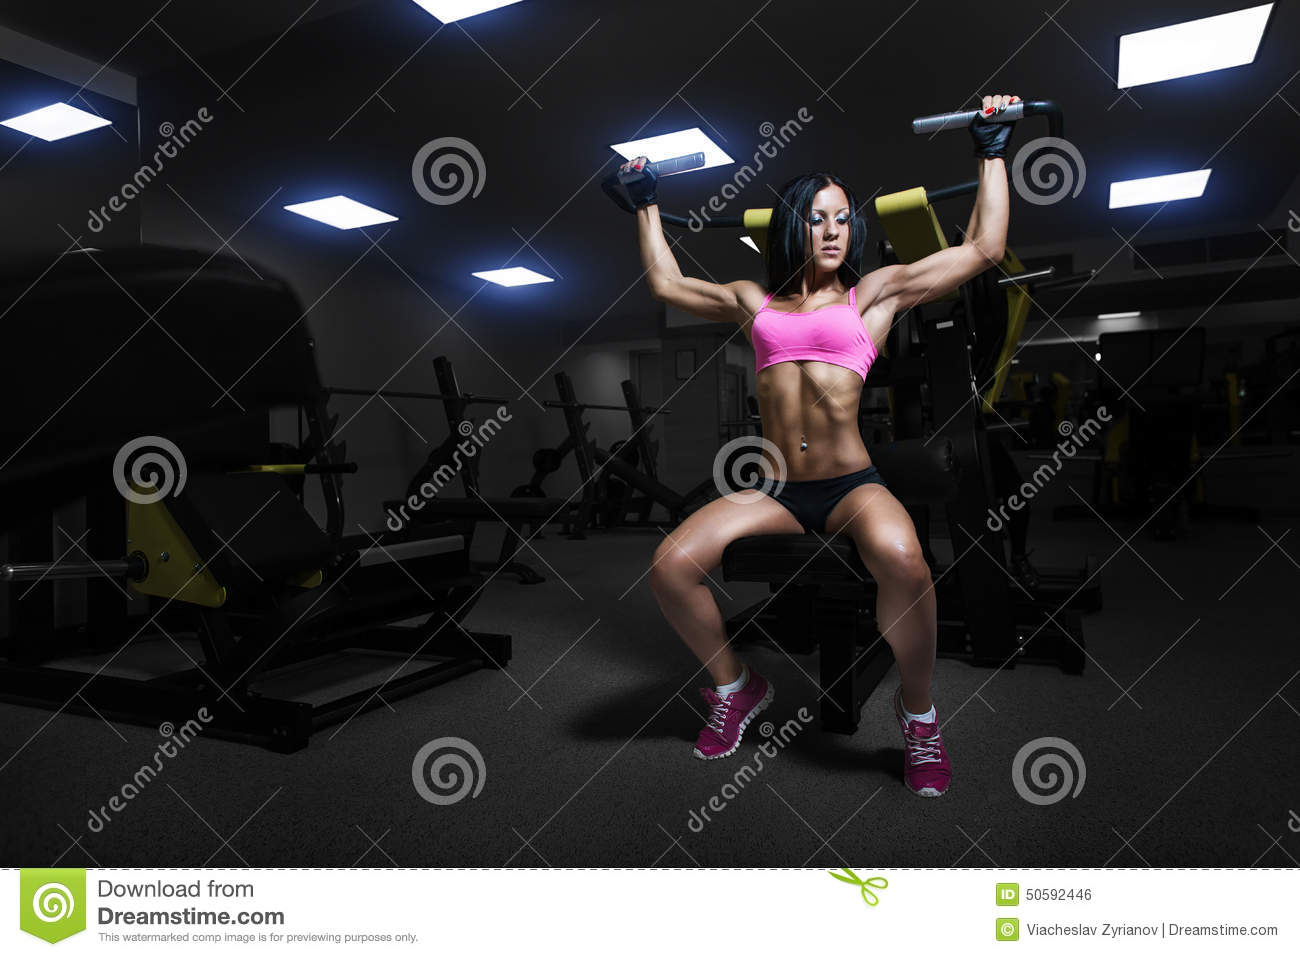 athlete woman lifts in the gym.